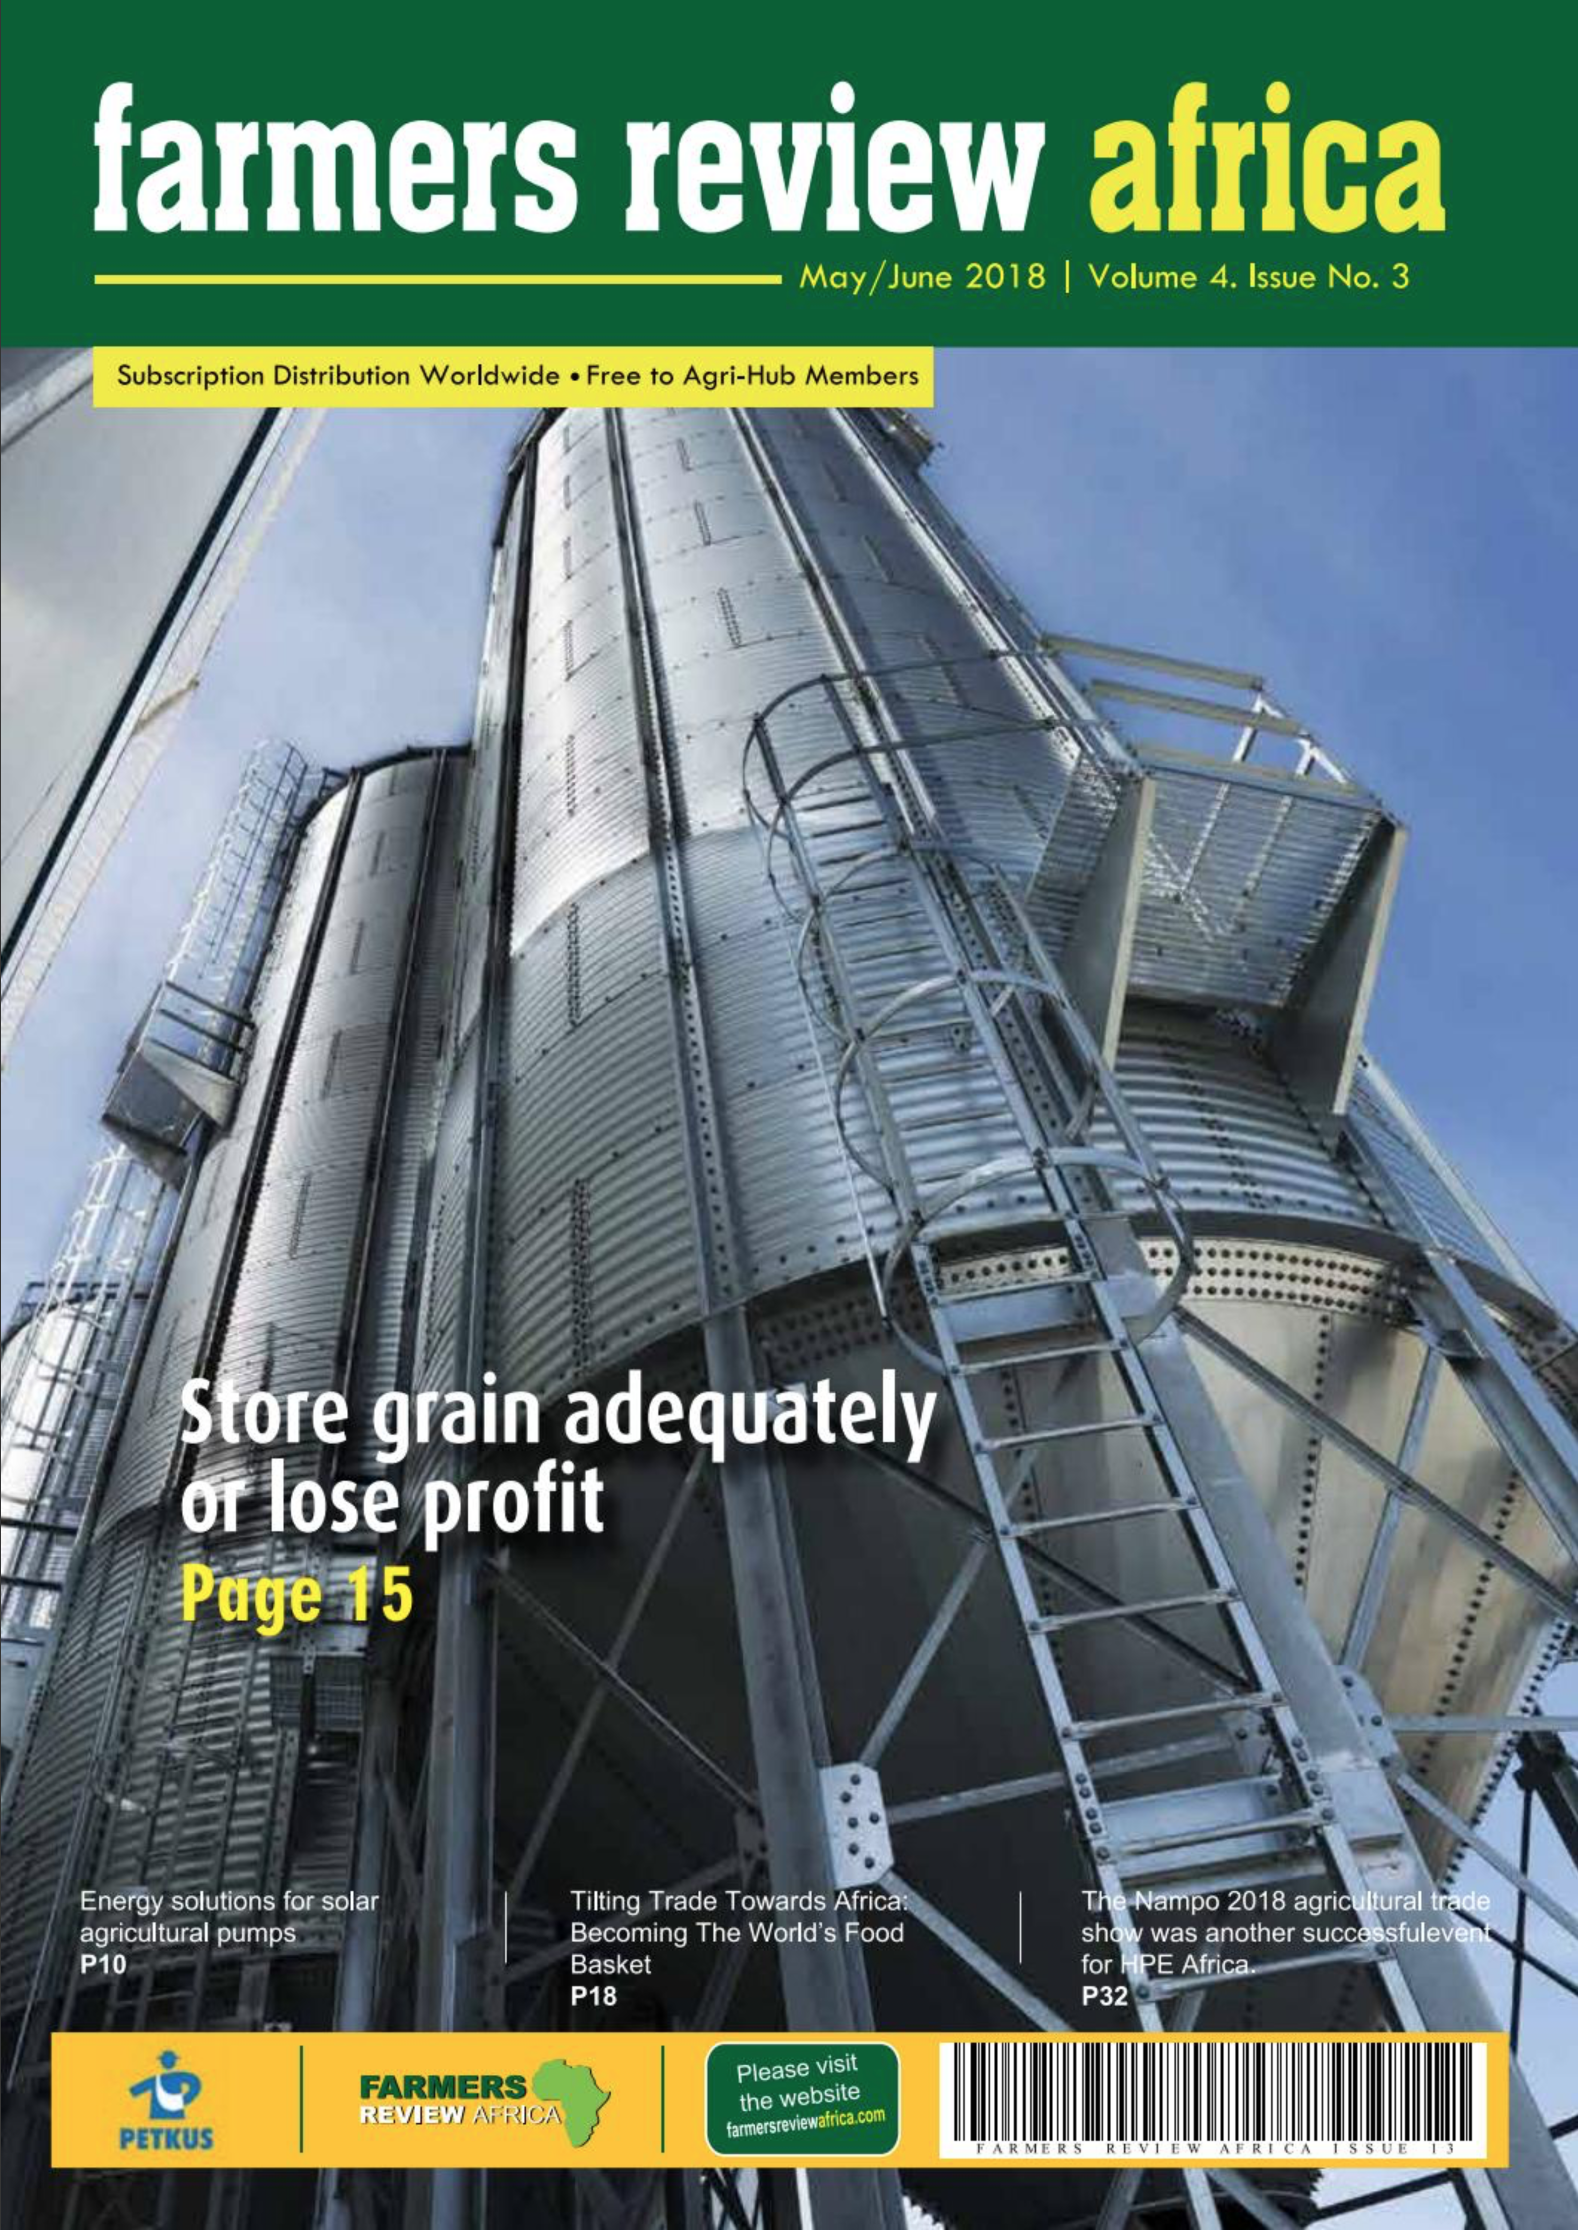 SIMEZA is cover in Farmers Review Africa